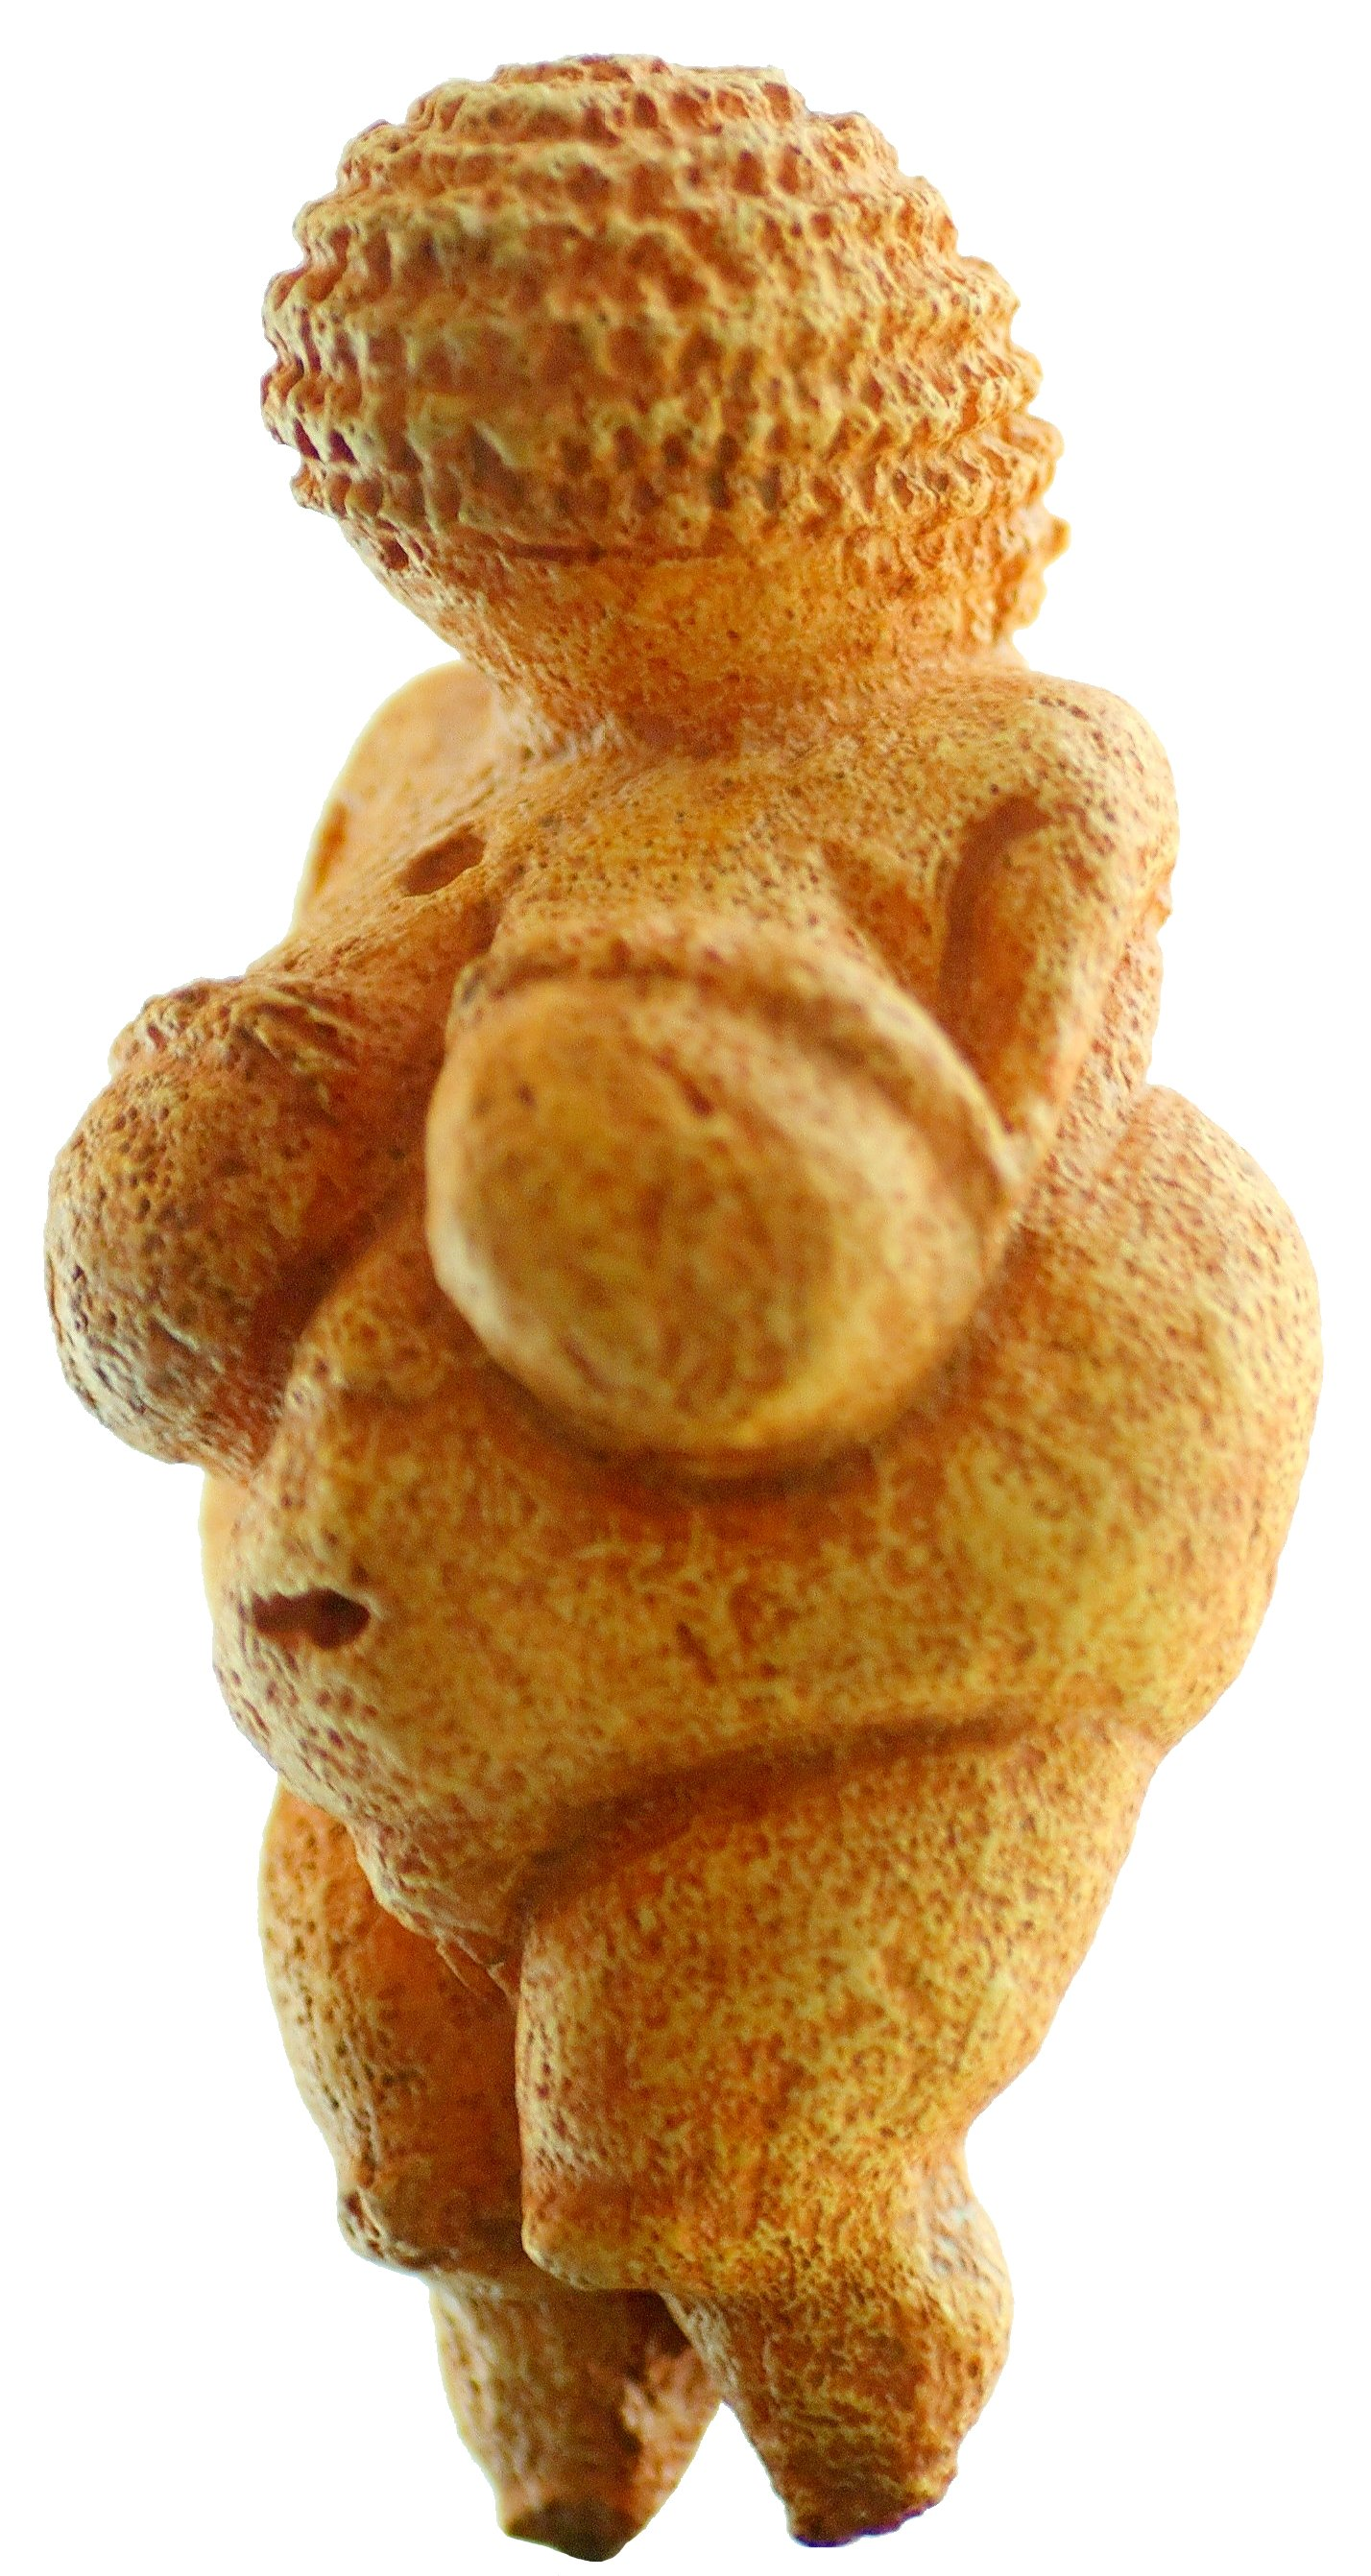 File:Venus von Willendorf 01.jpg - Wikimedia Commons